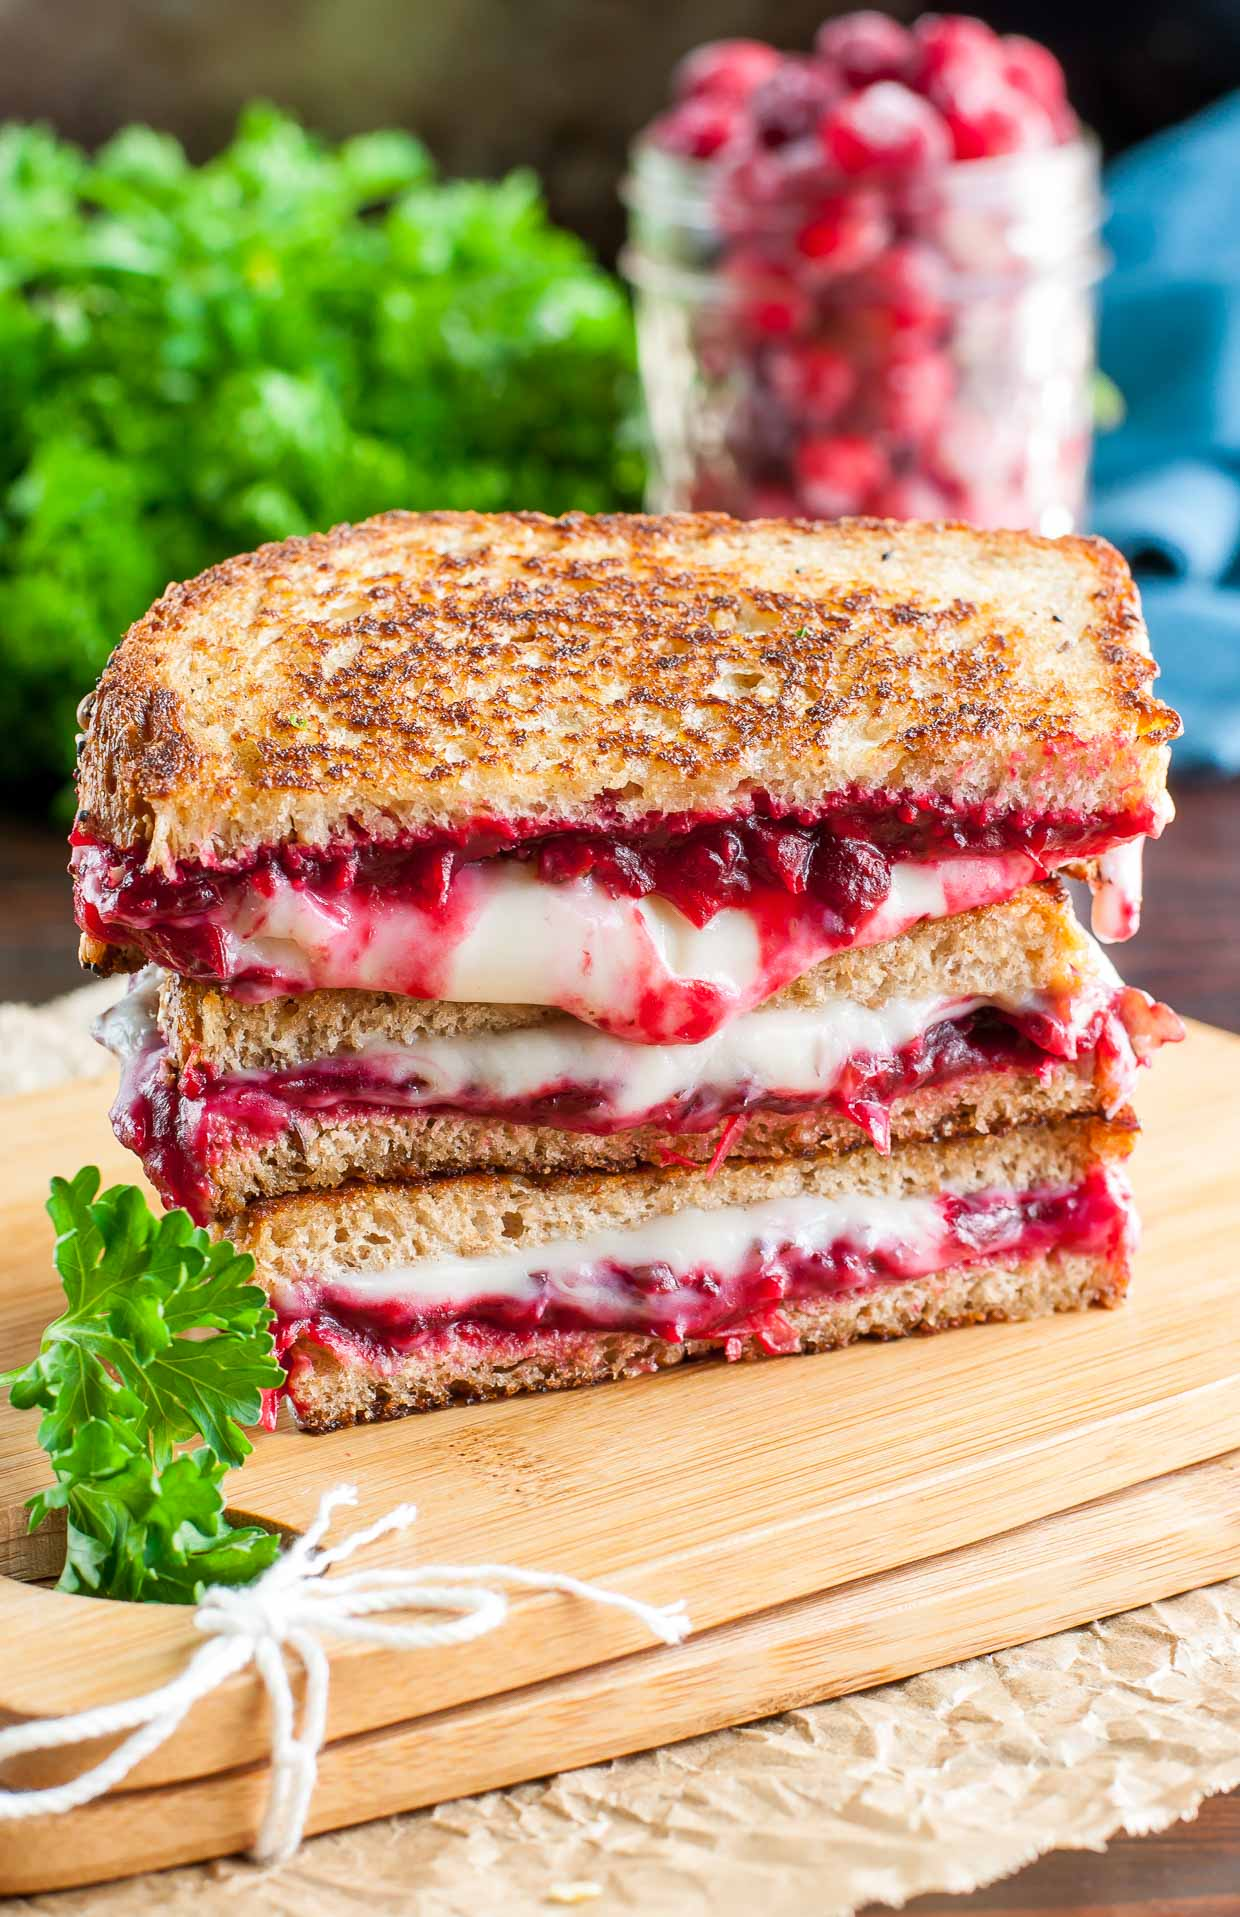 Vegan Grilled Cheese - Three Ways! Cranberry Pecan Provolone Vegan Grilled Cheese